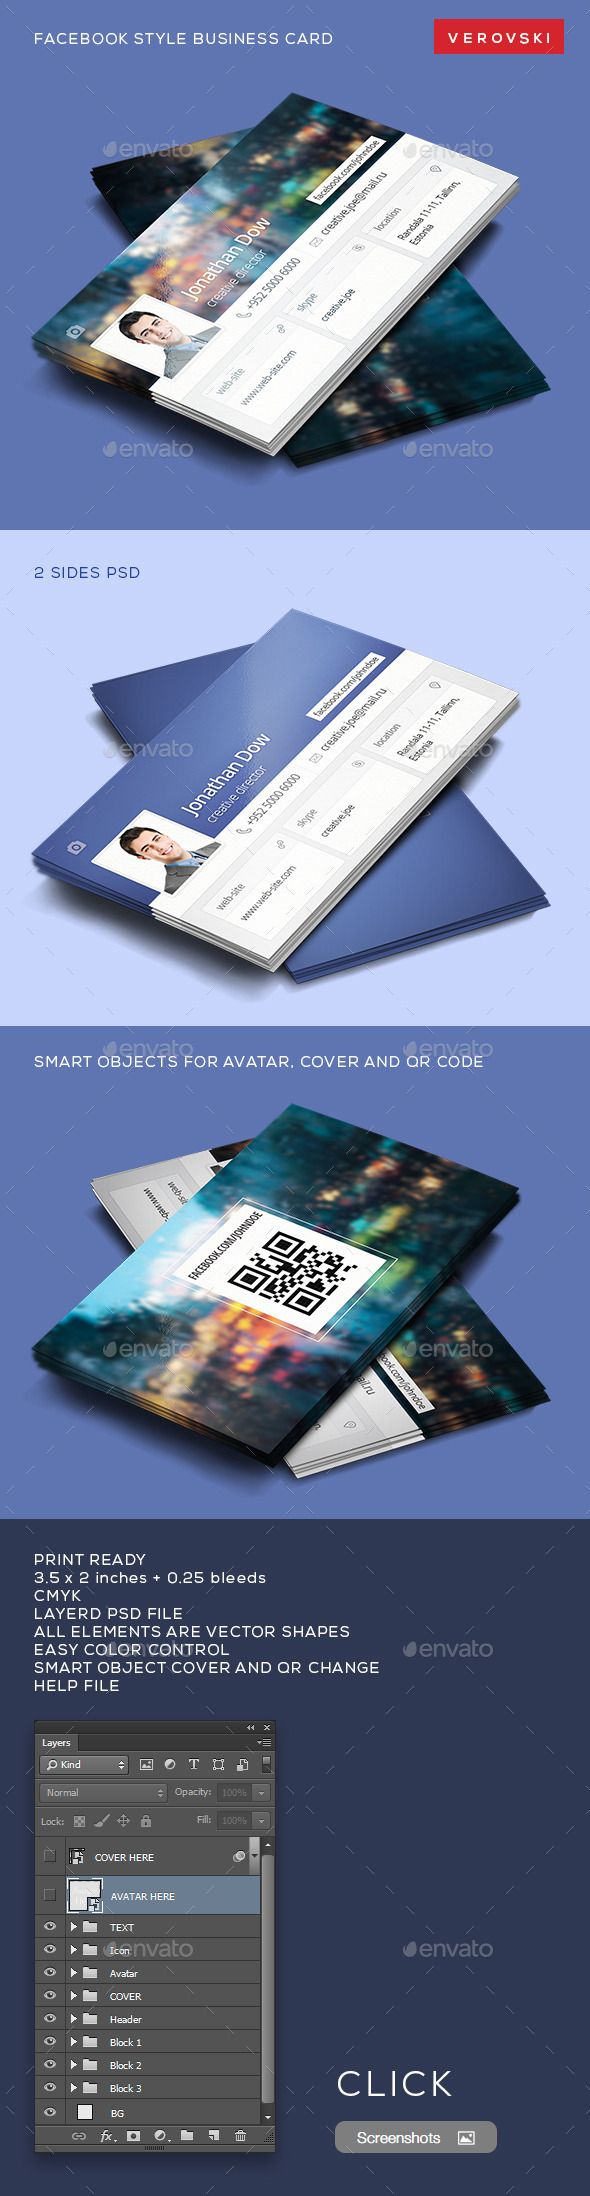 Facebook style business card pinterest business cards card facebook style business card template psd facebookbusinesscard buy and download http accmission Choice Image